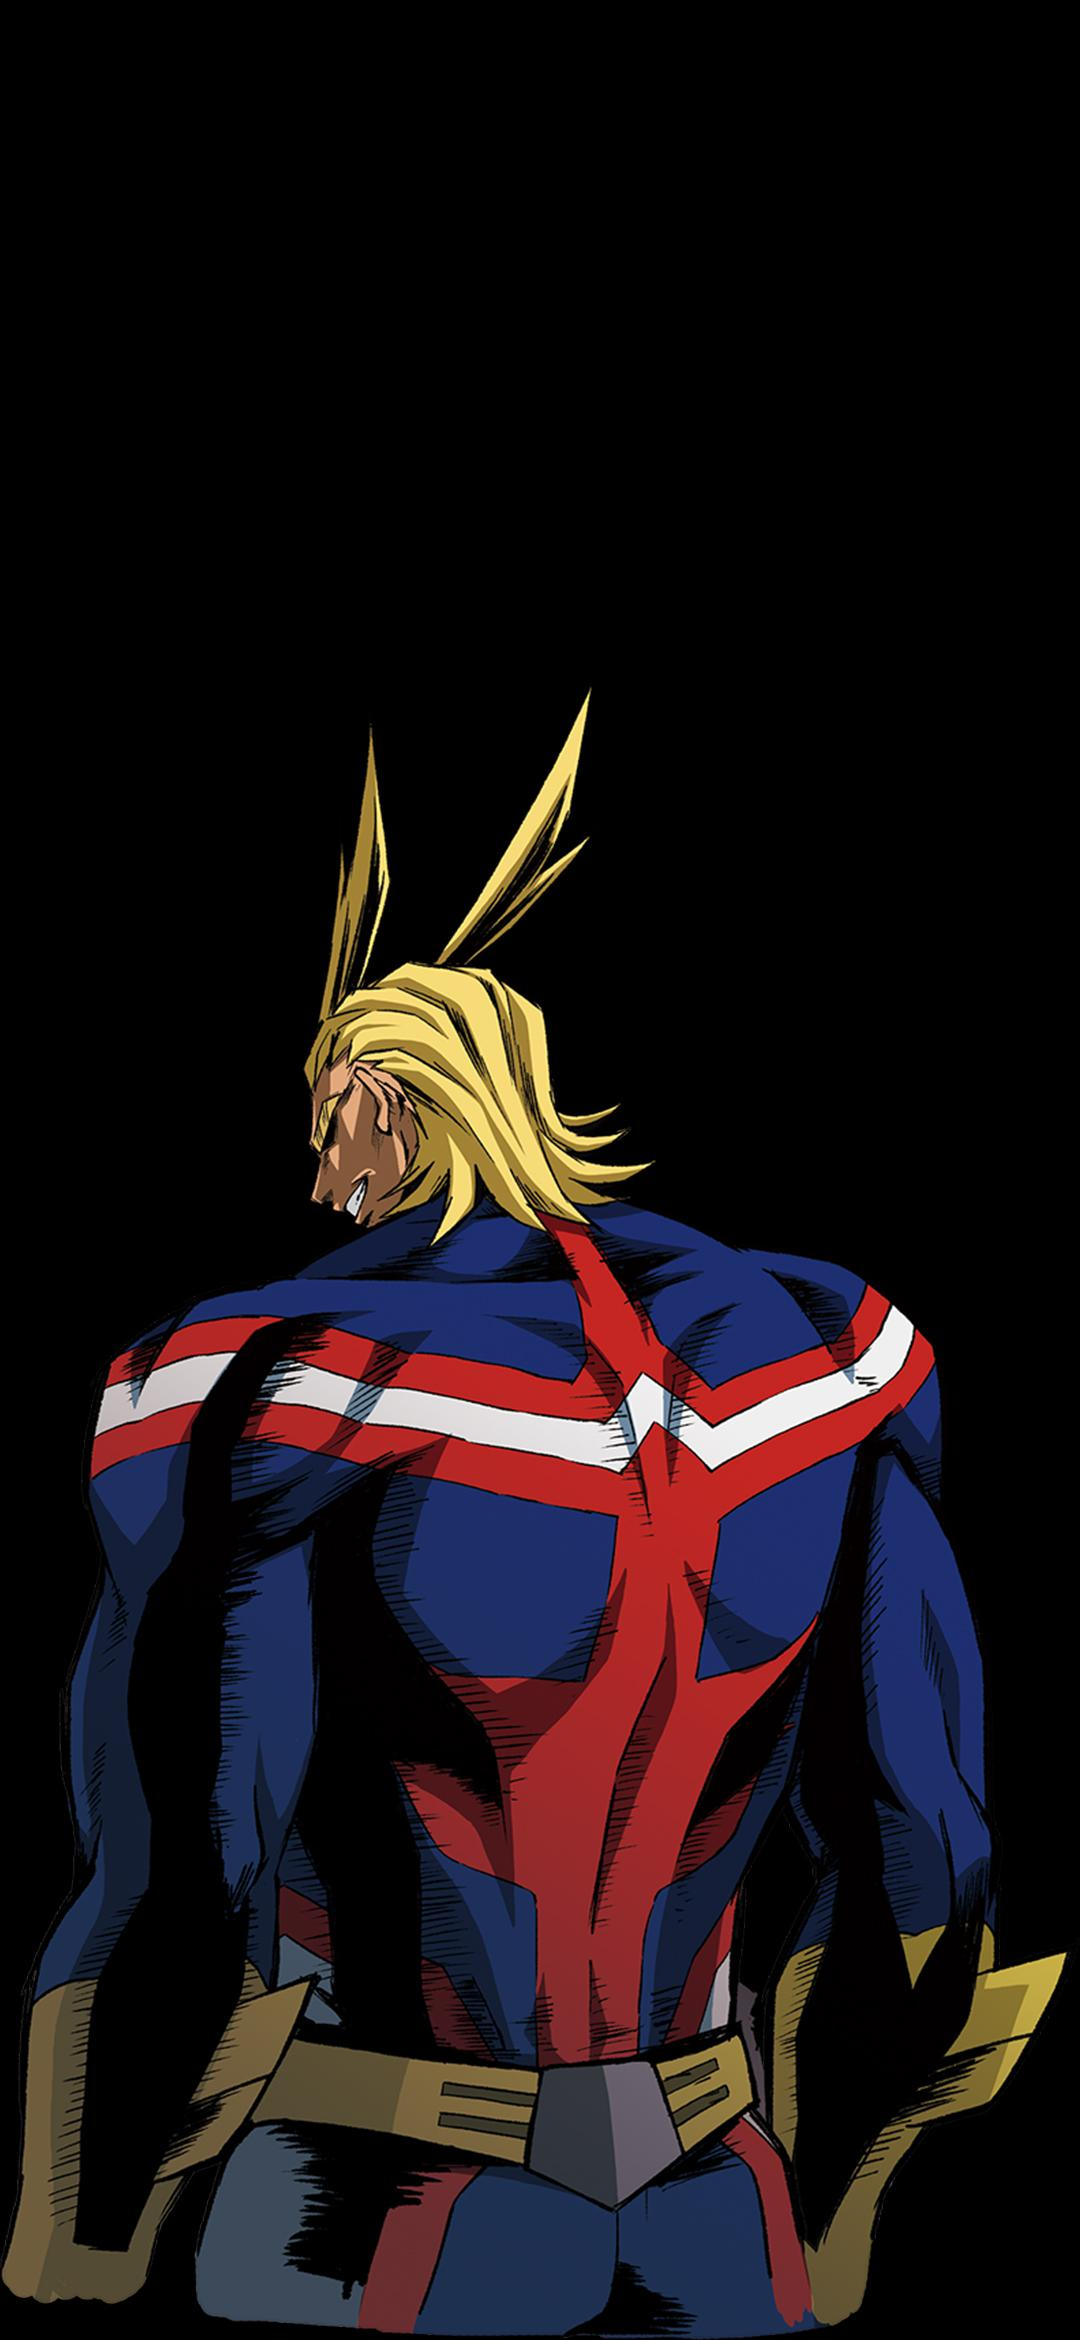 All Might Phone Wallpapers AMOLED : BokuNoHeroAcademia